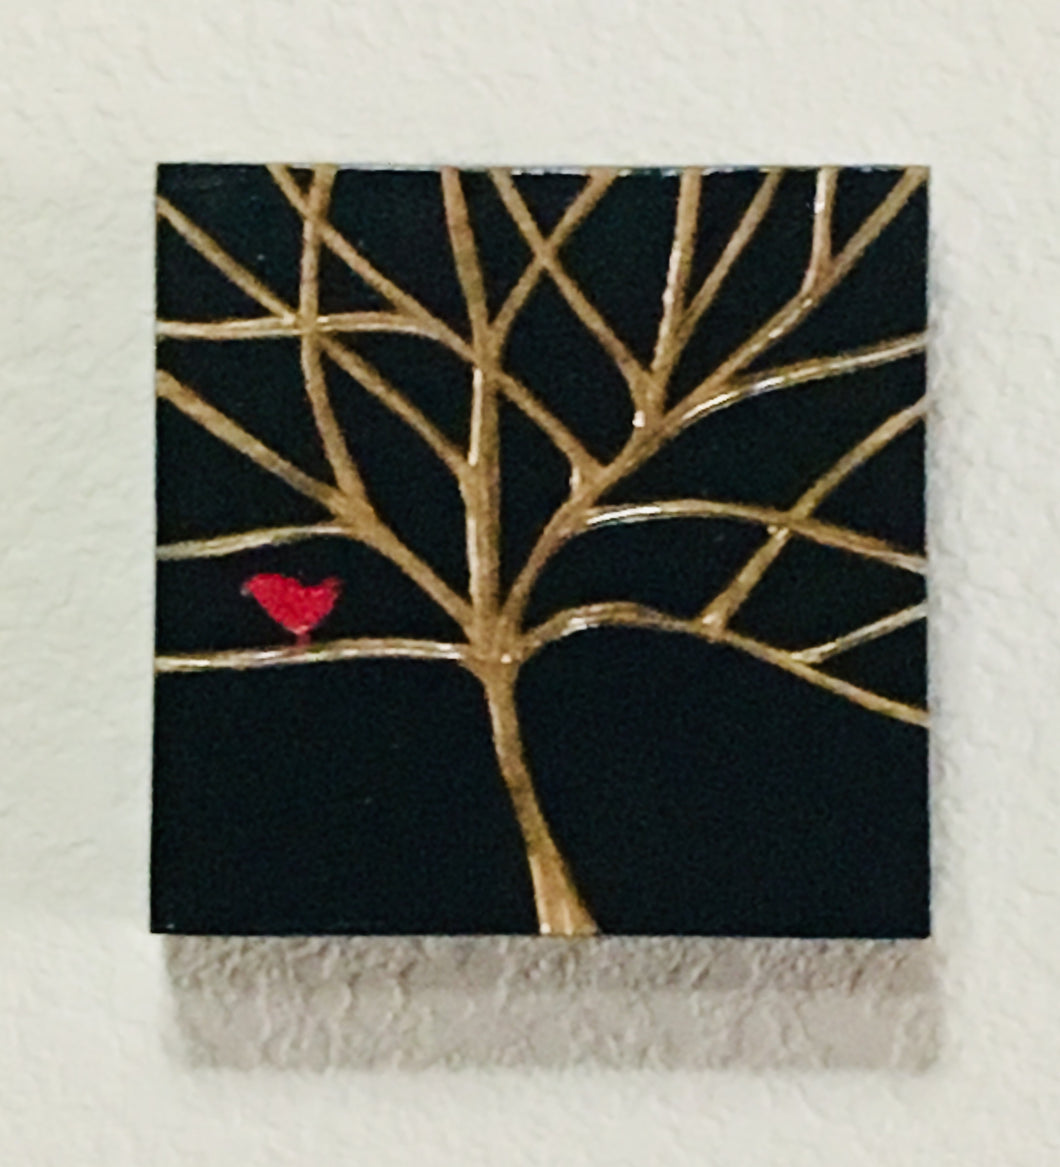 Red Bird in a Black Tree